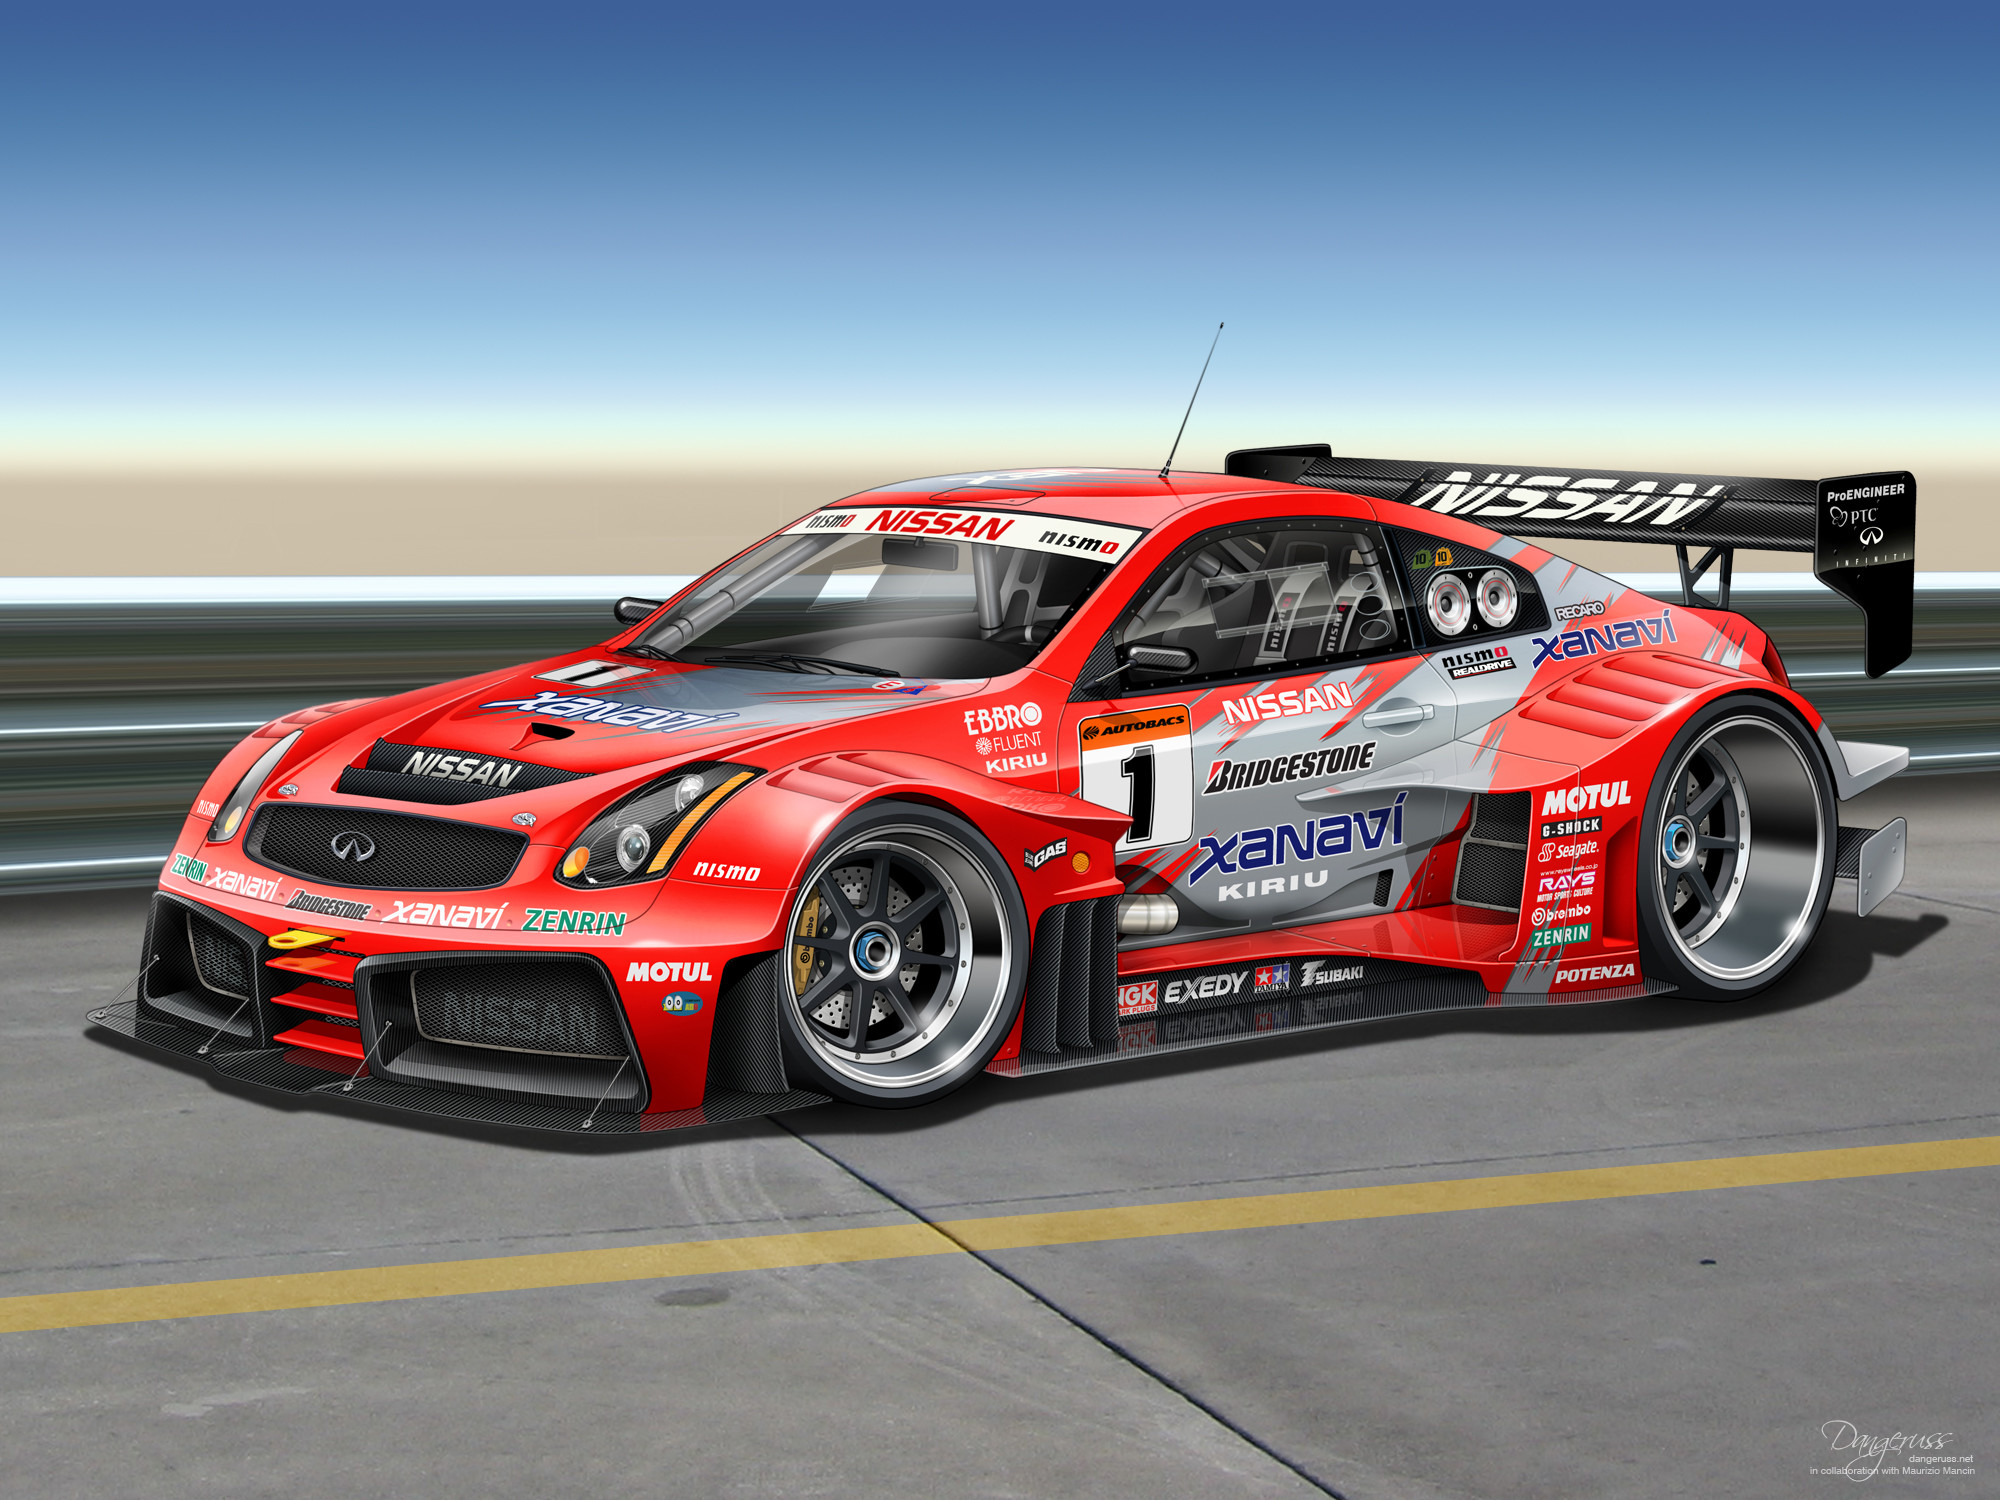 2000x1500 Race Car Graphics Designs. Wallpapers ...